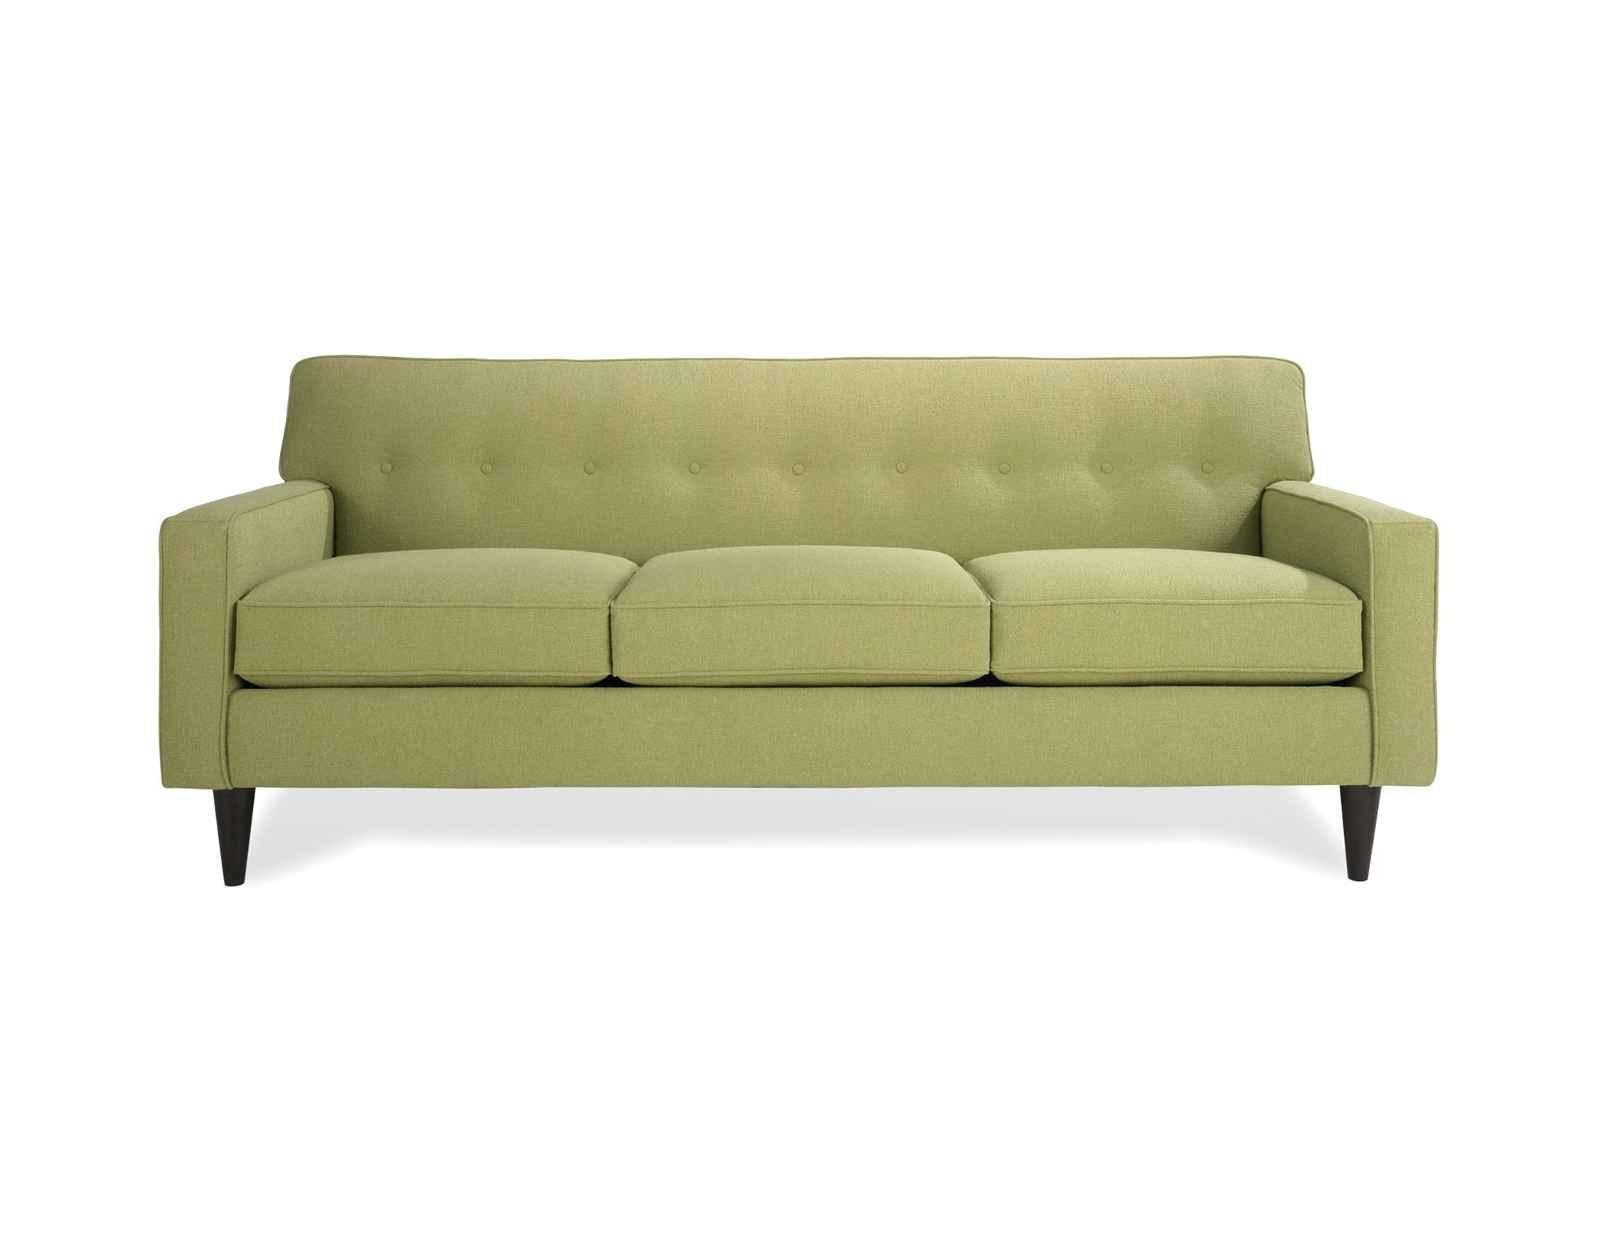 Inexpensive Couch Sets Of Cheap Sofas And Loveseats Sets